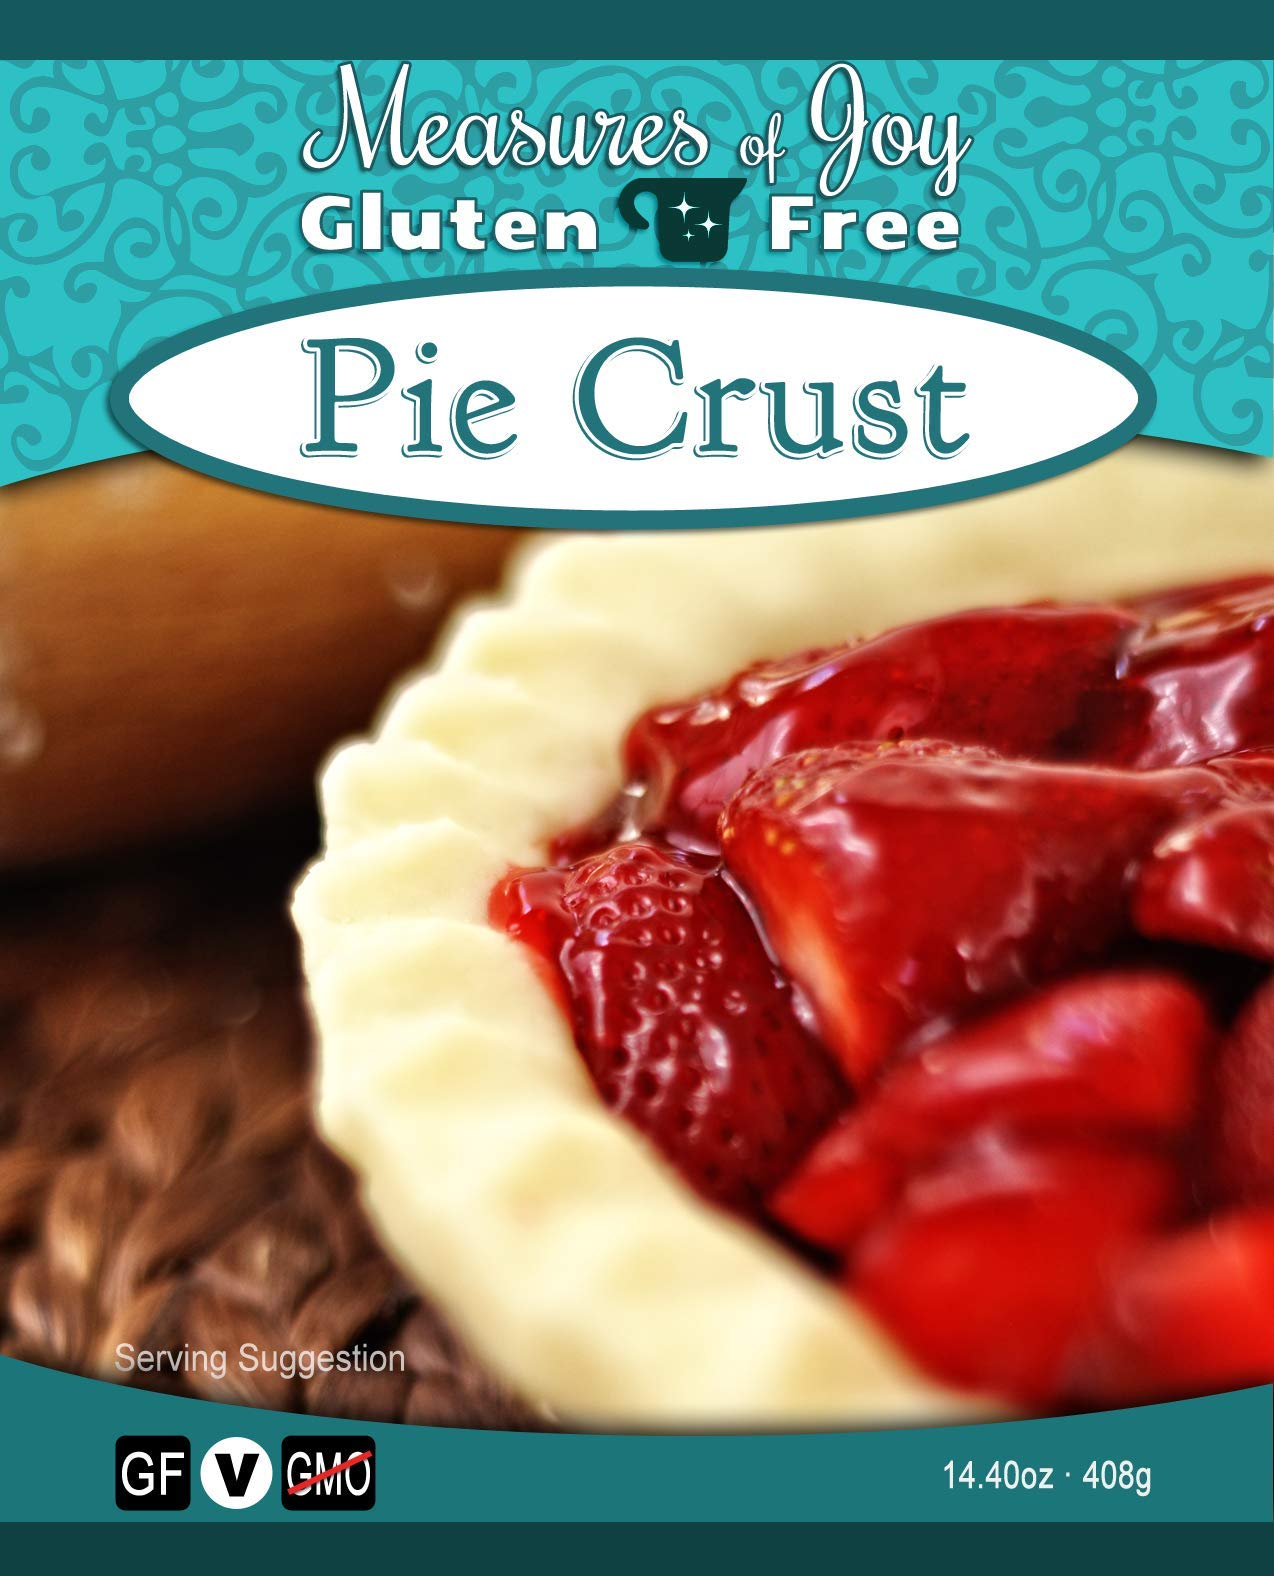 Measures of Joy Gluten Free Pie Crust